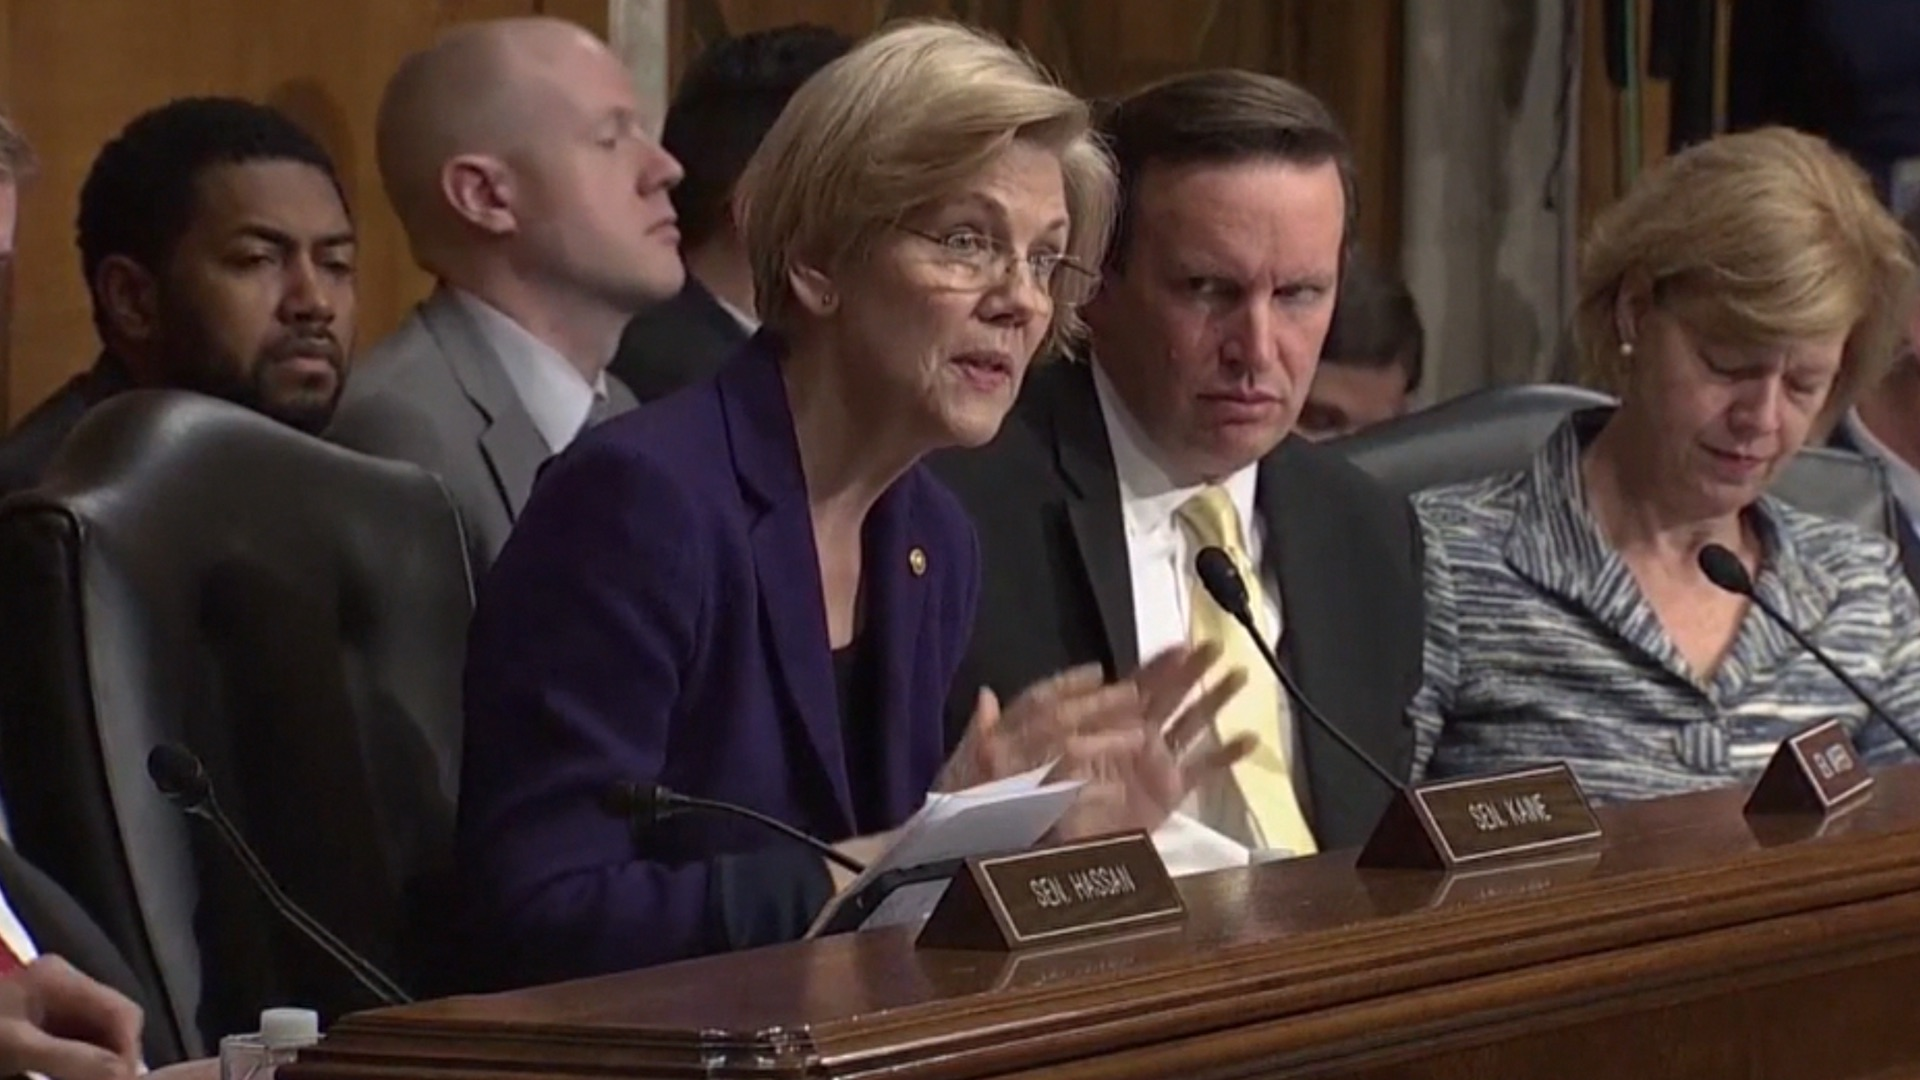 Elizabeth Warren: Trump's nominees are putting us all at risk by ignoring ethics laws